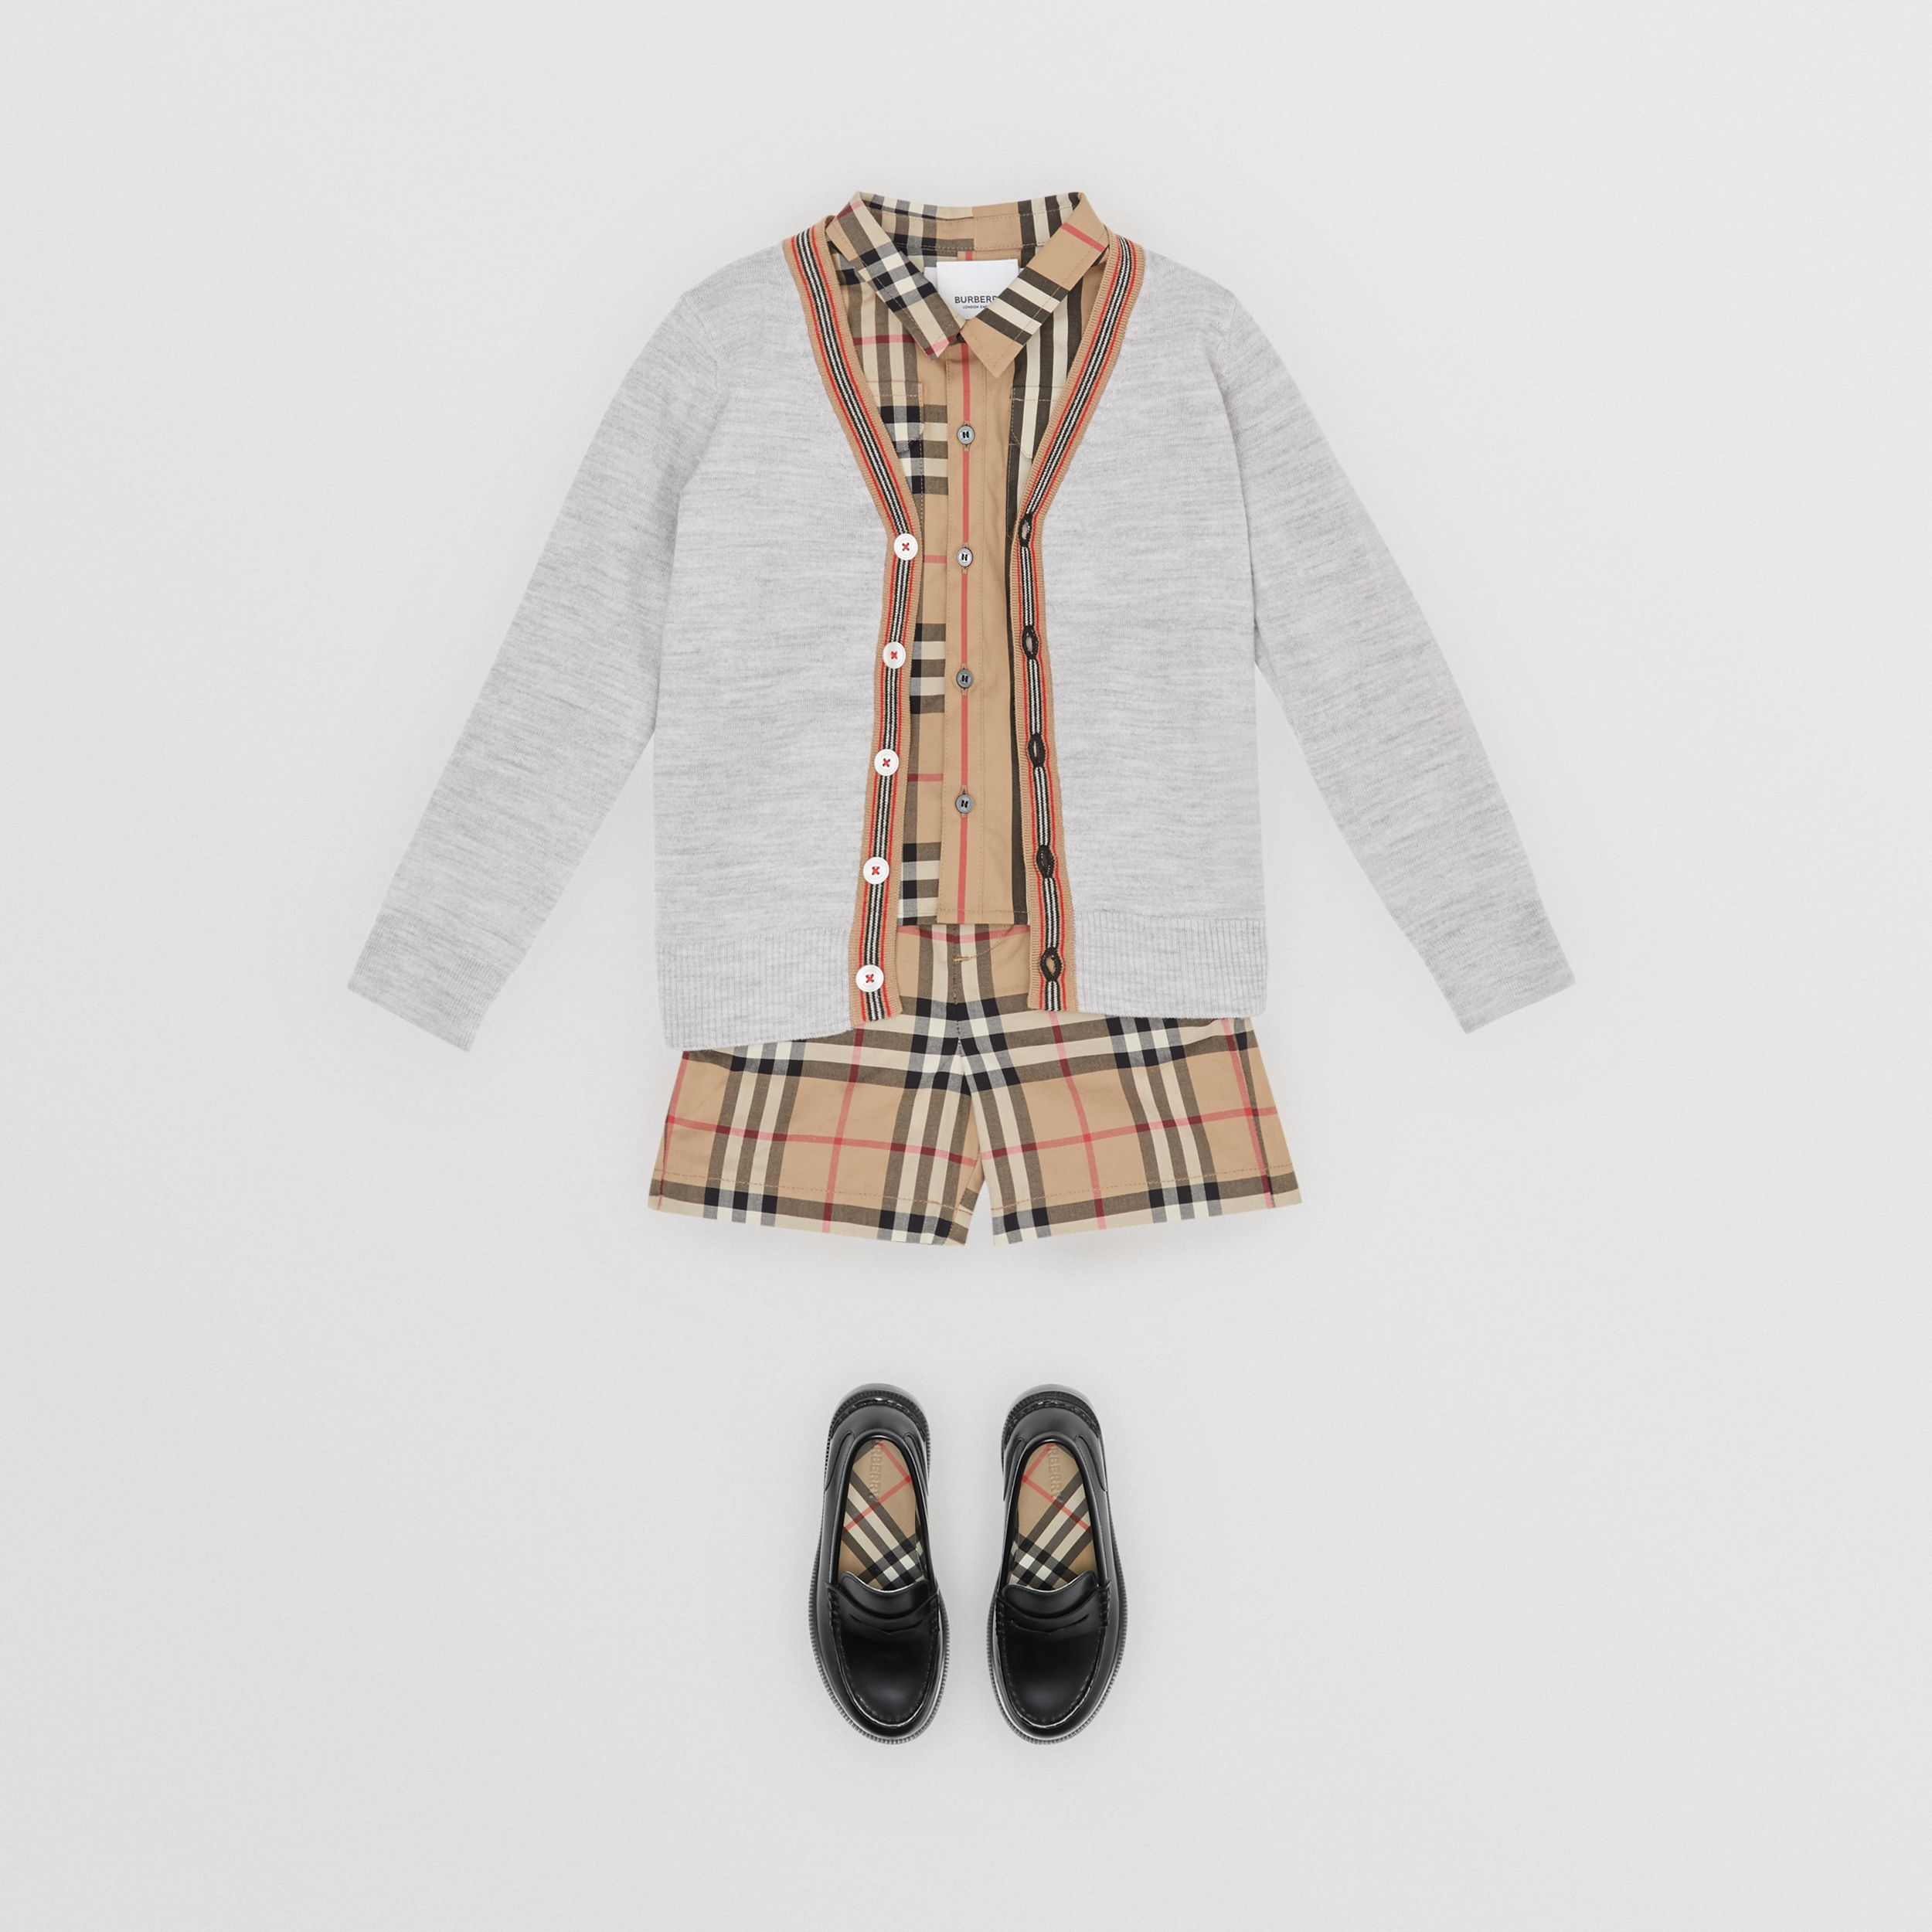 Icon Stripe Detail Merino Wool Cardigan in Light Grey Melange - Children | Burberry - 4